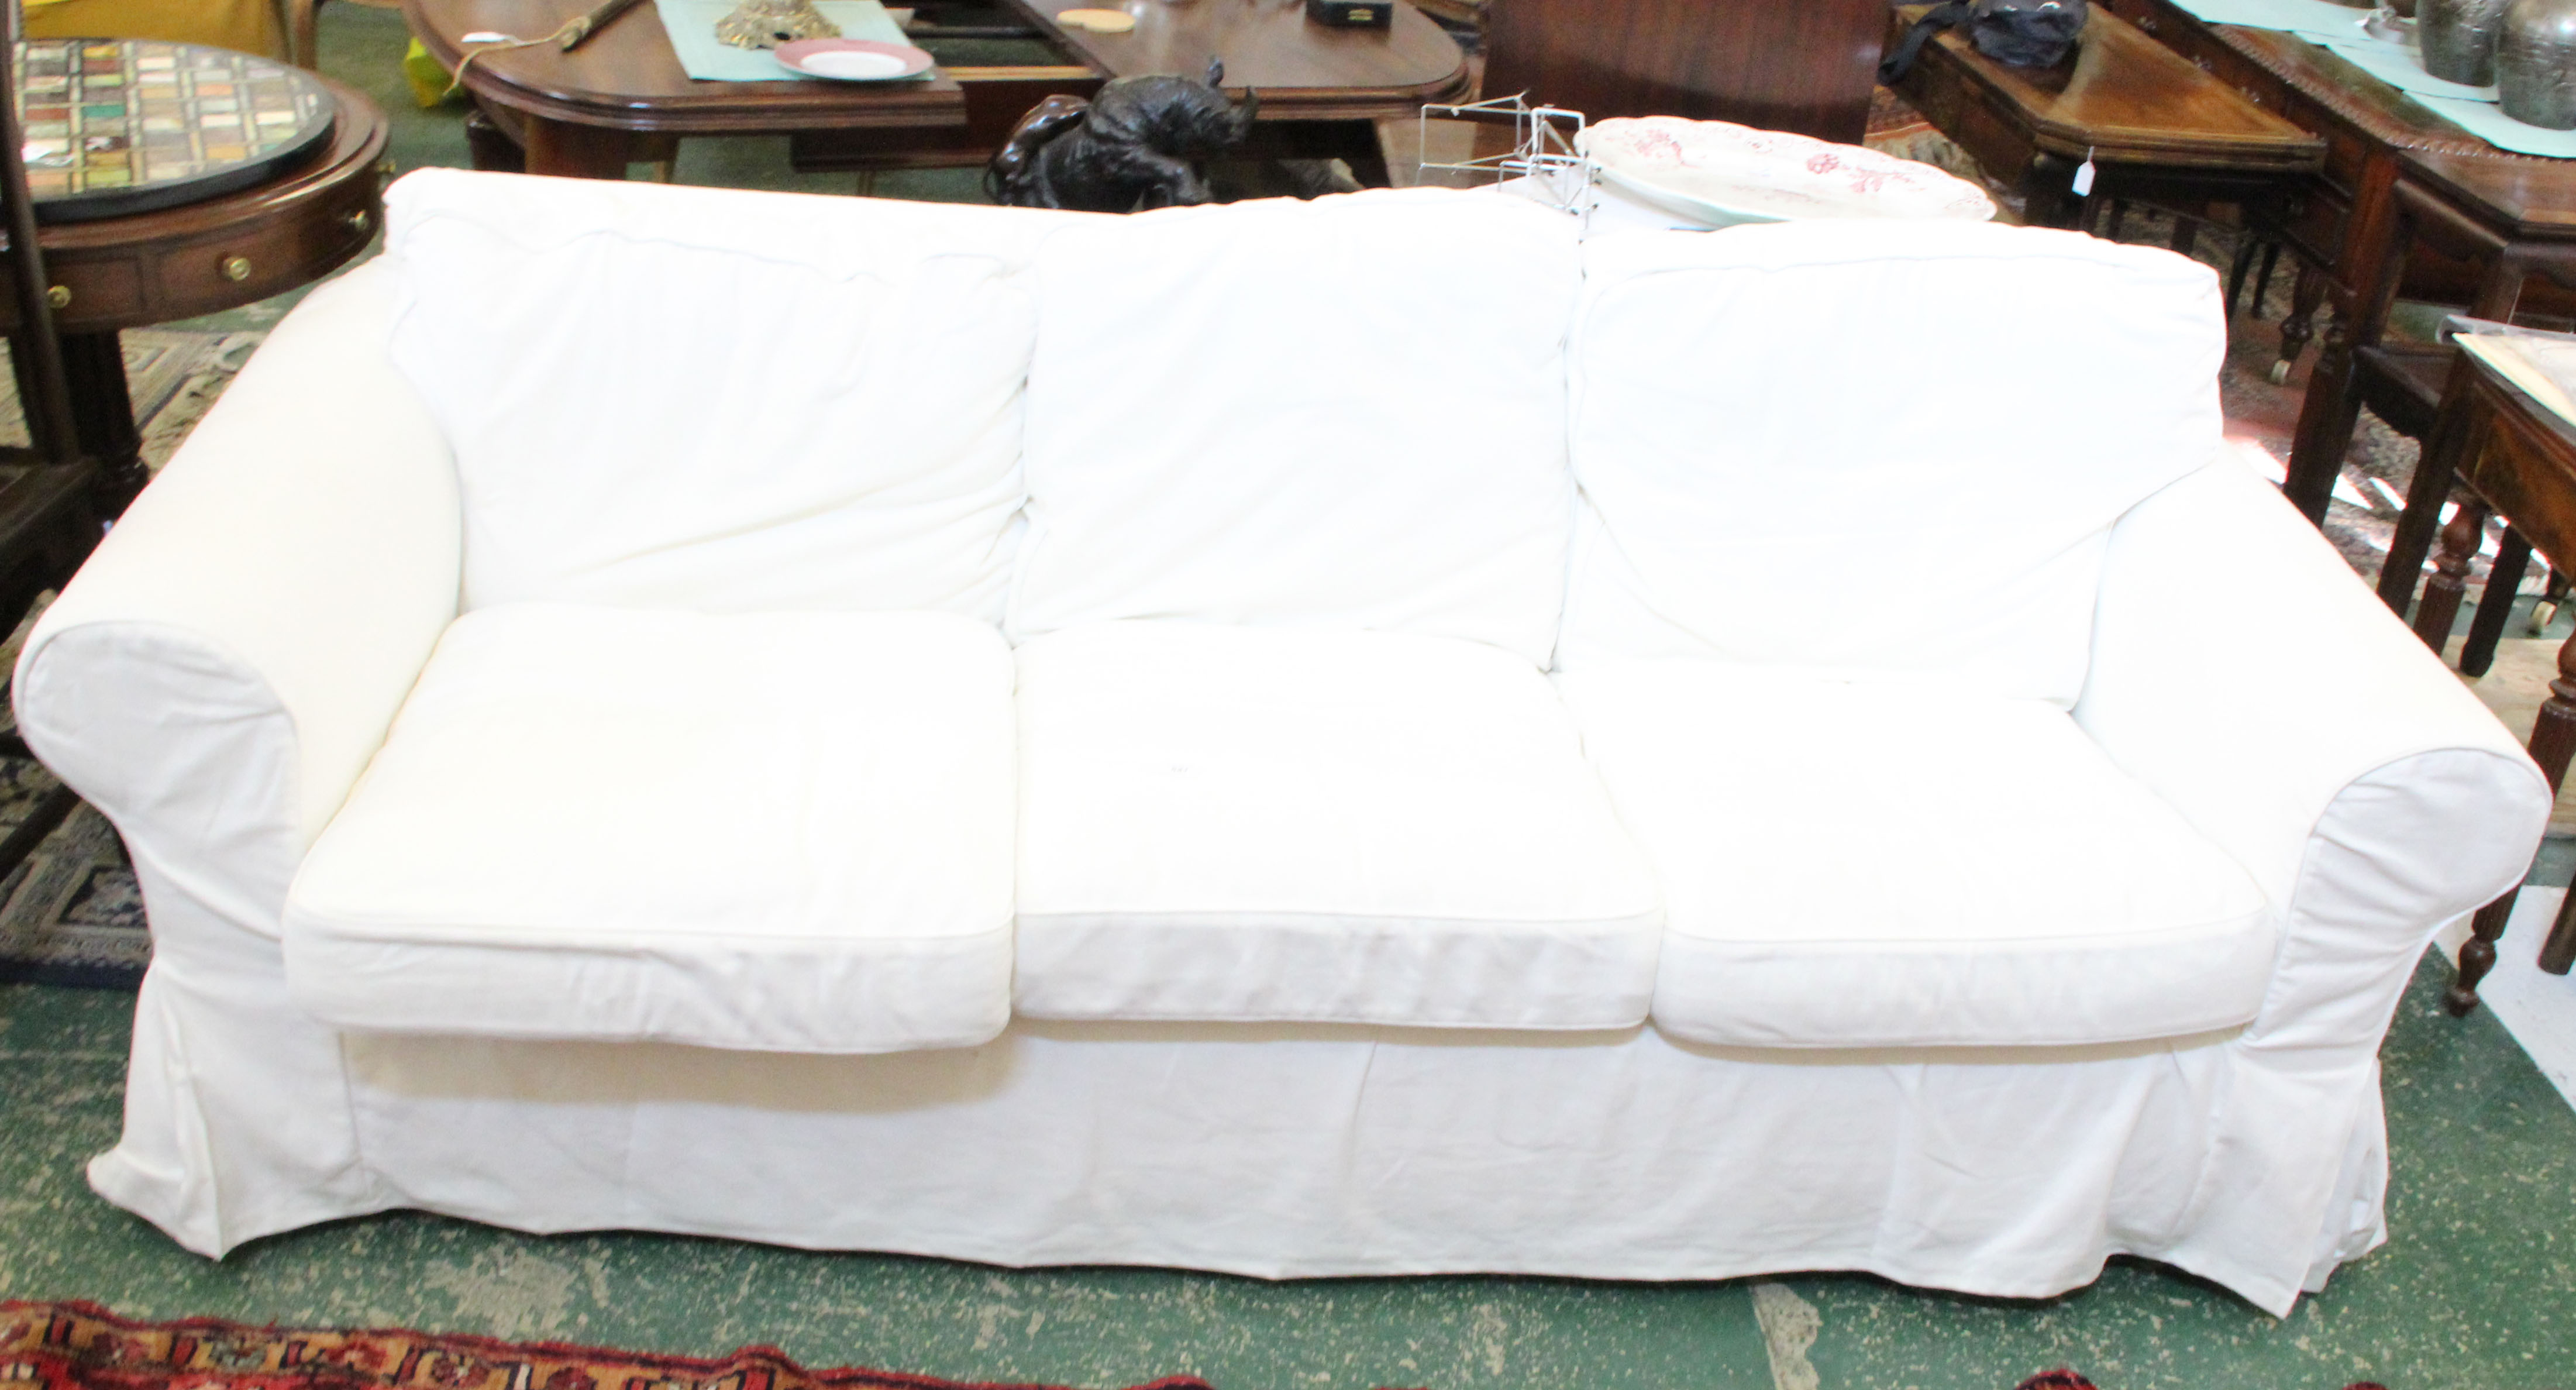 Ikea Ektorp three seater sofa in Stenasa White removable covers